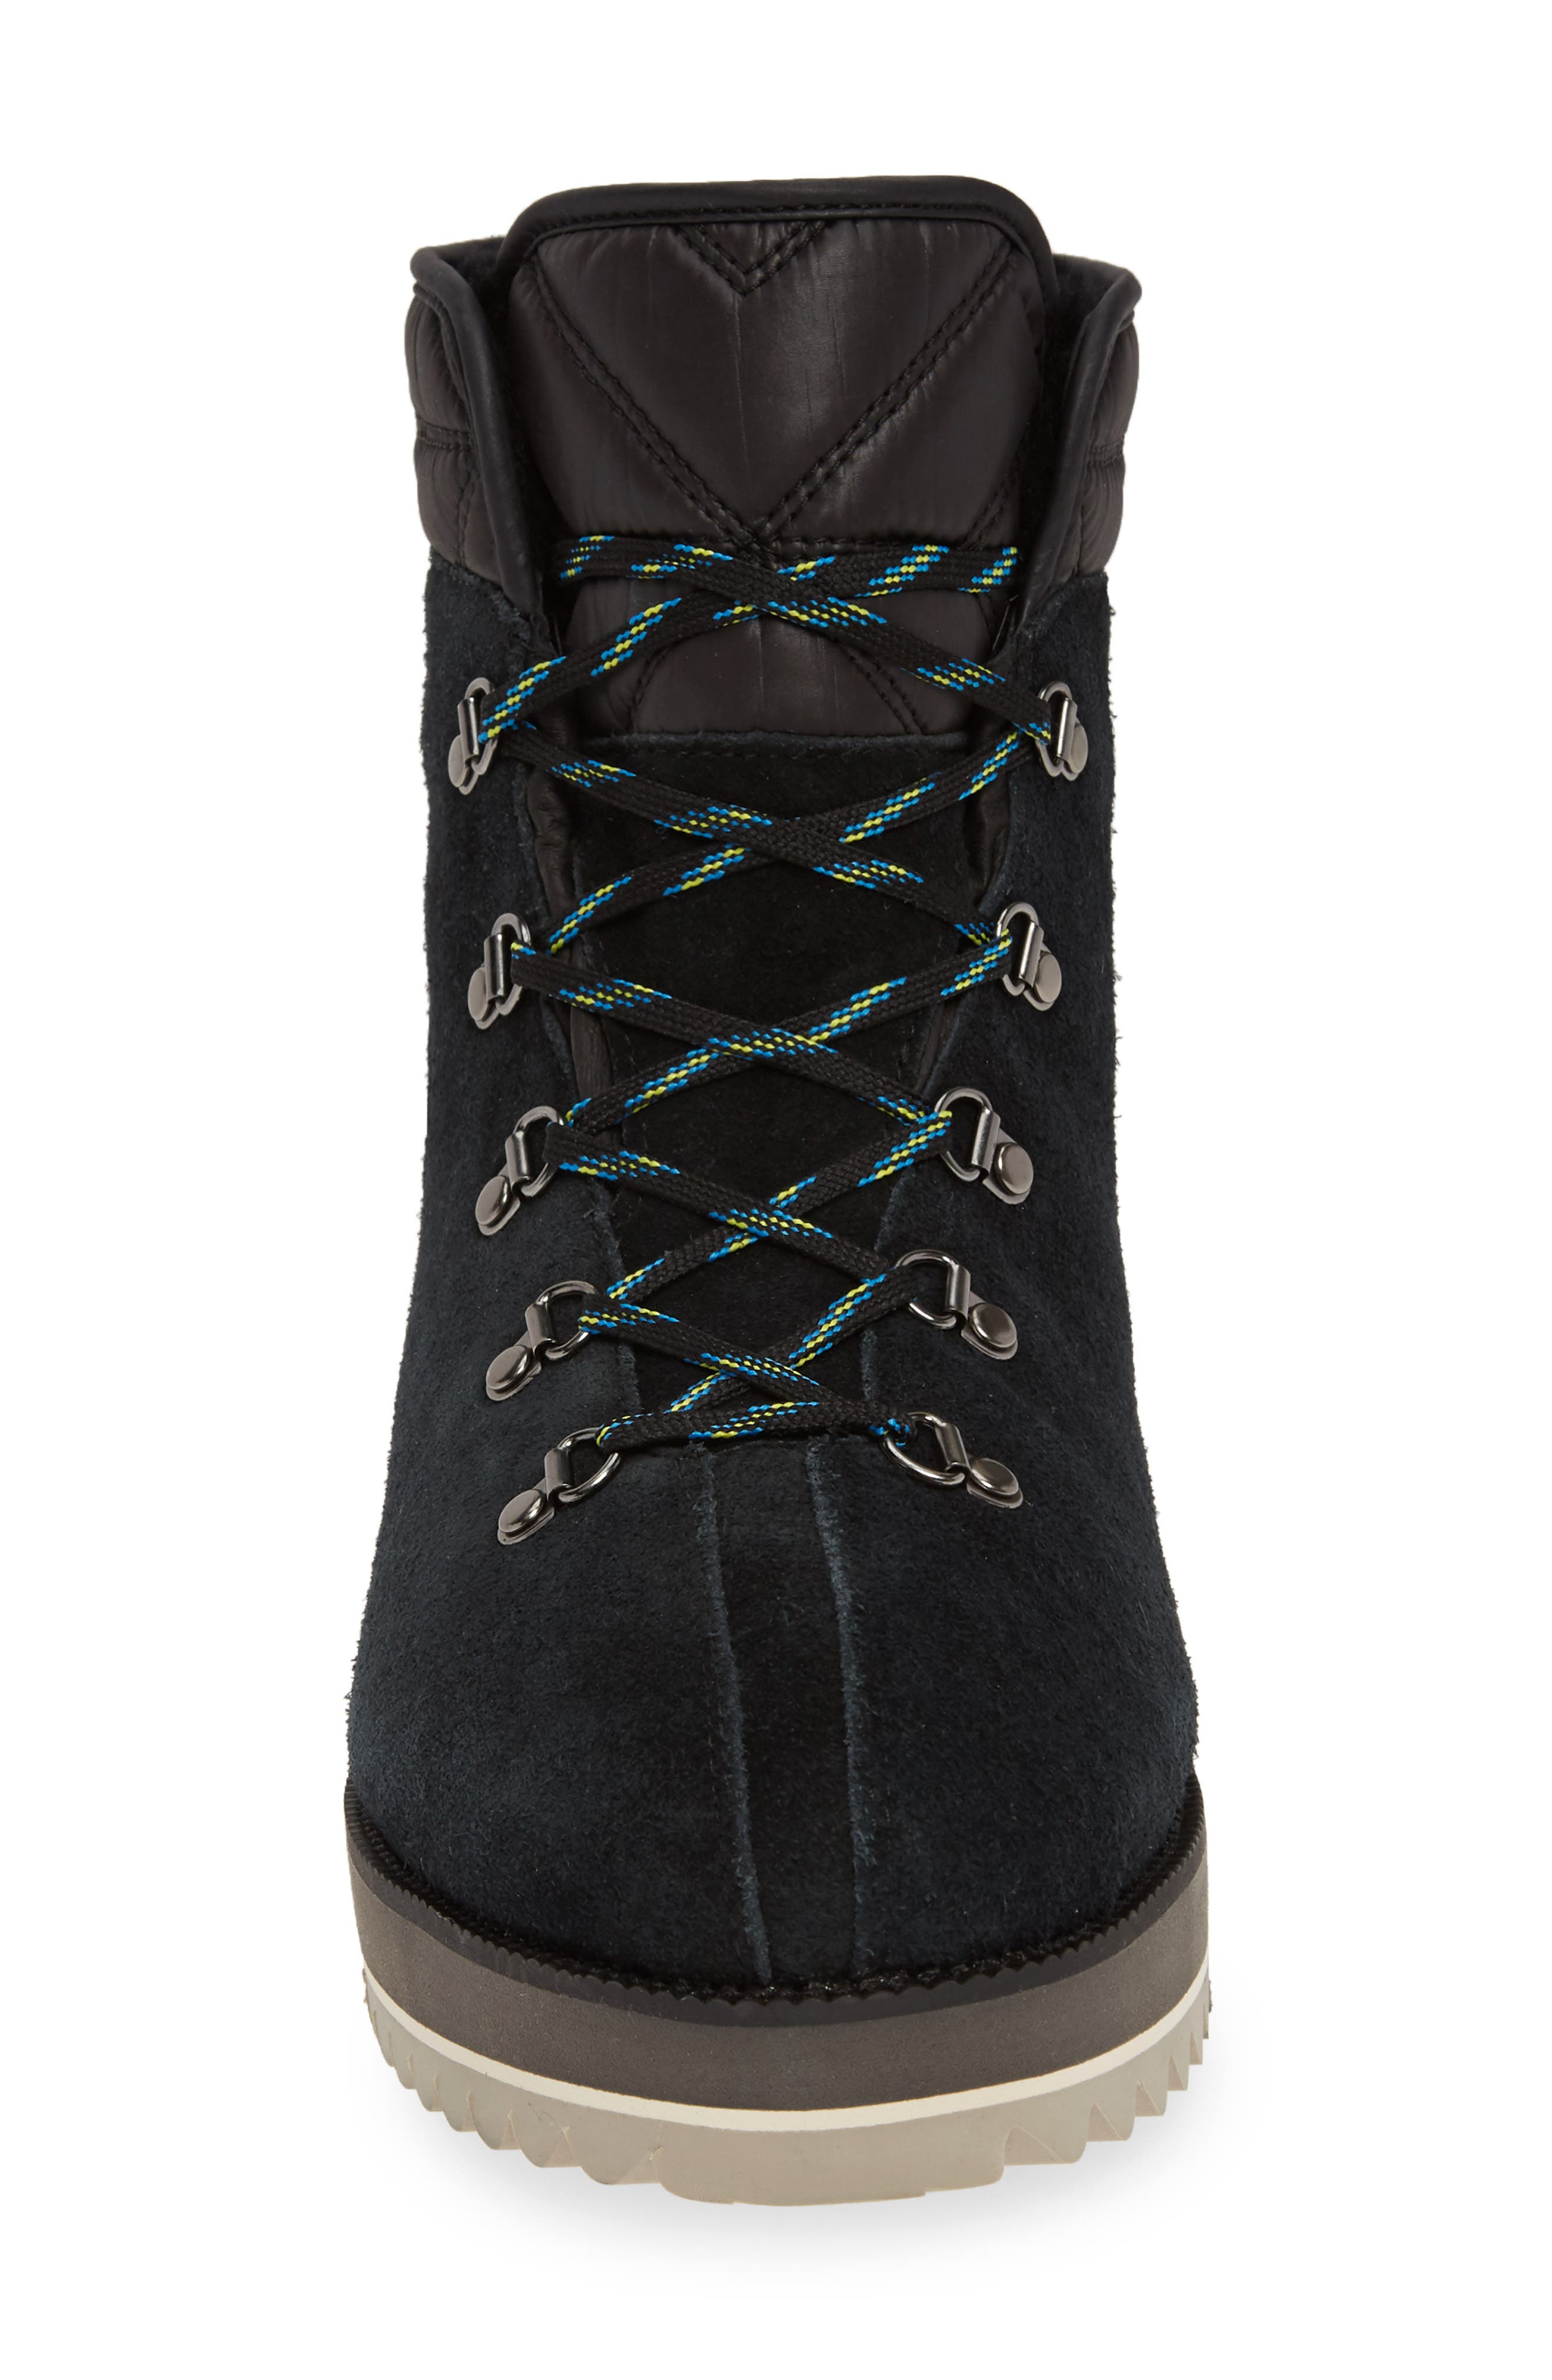 UGG<SUP>®</SUP>, Birch Waterproof Lace-Up Winter Bootie, Alternate thumbnail 4, color, BLACK